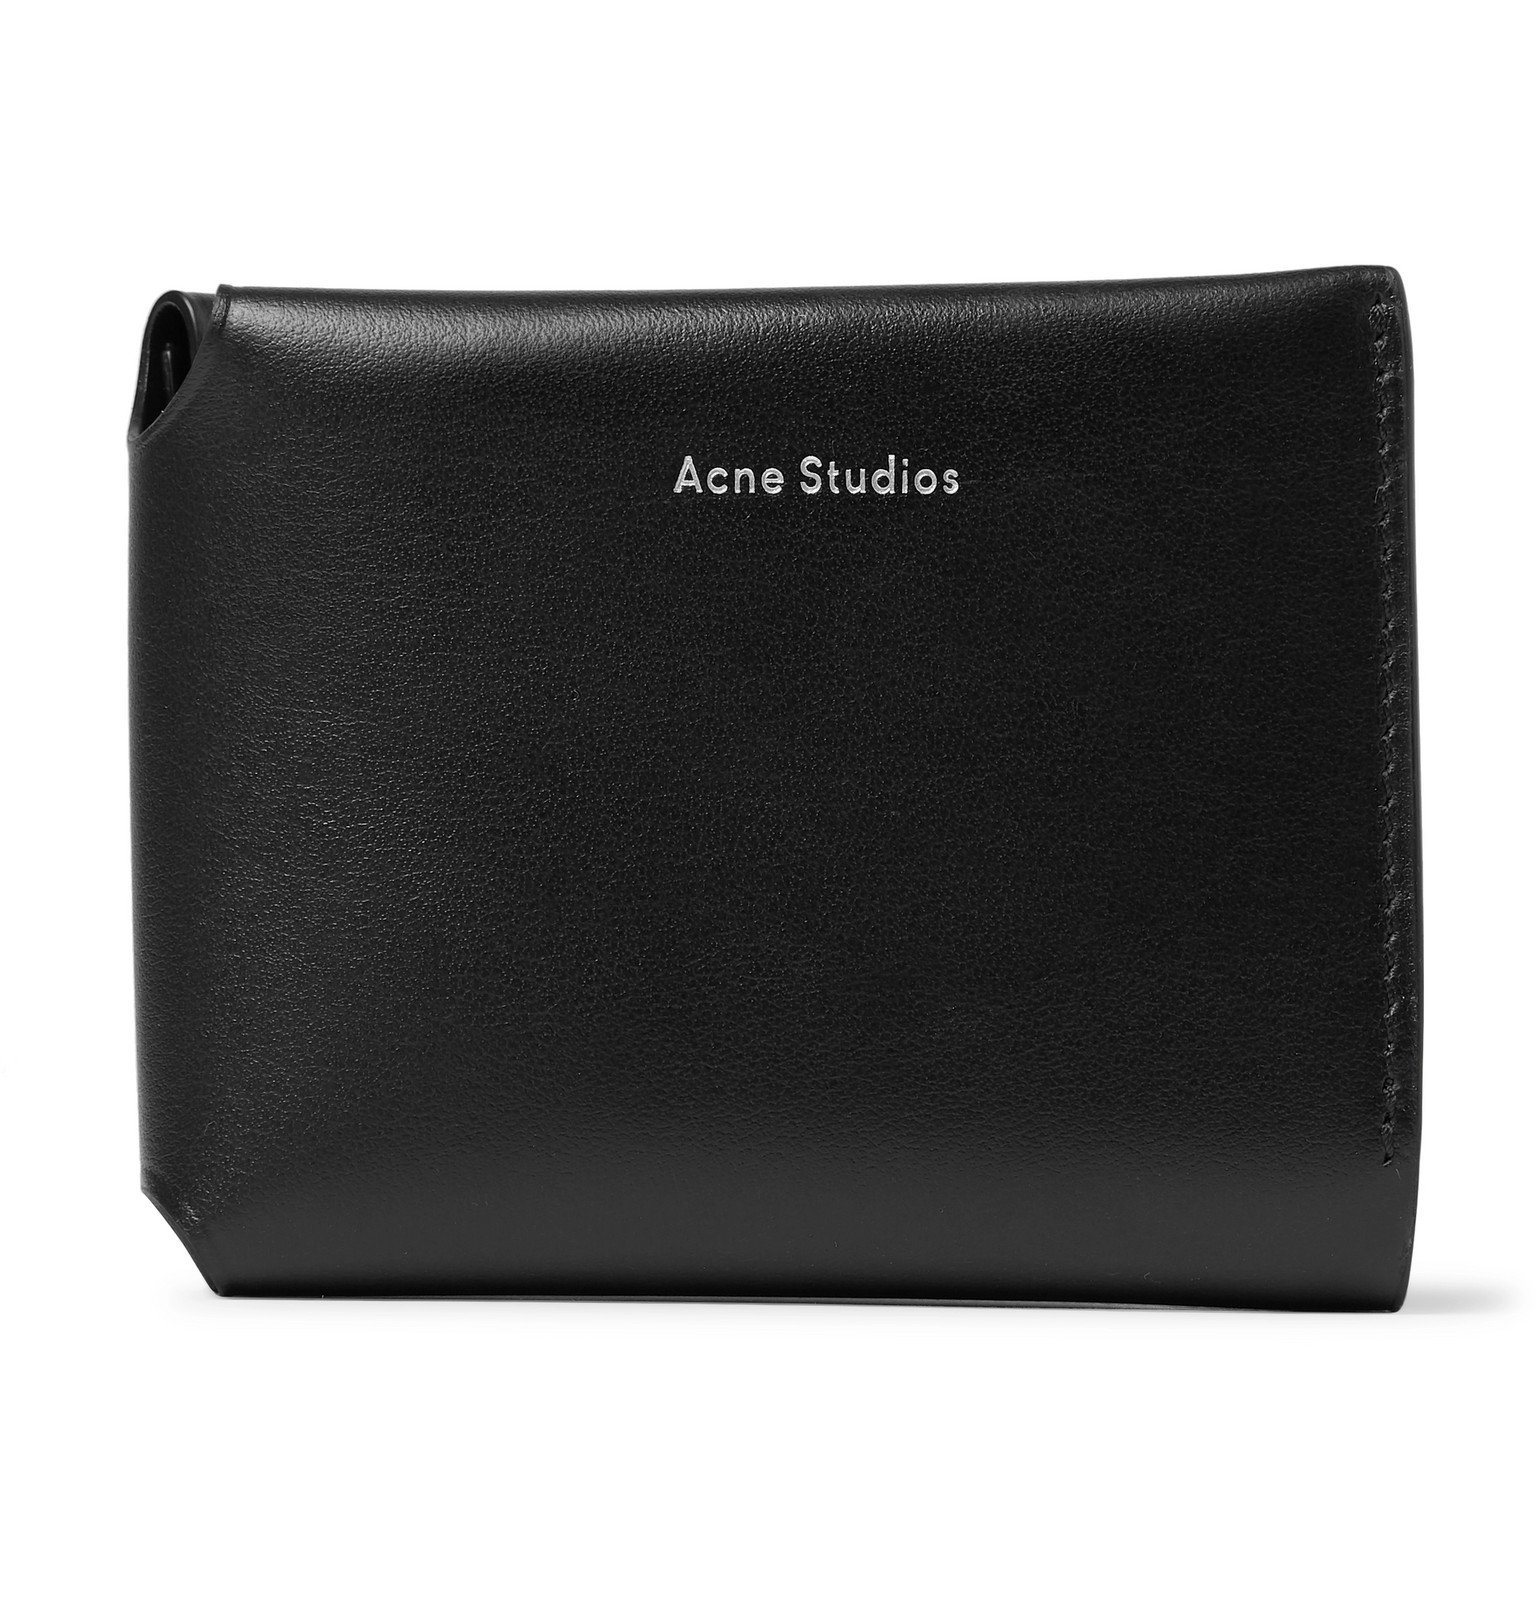 Acne Studios - Leather Trifold Wallet - Black